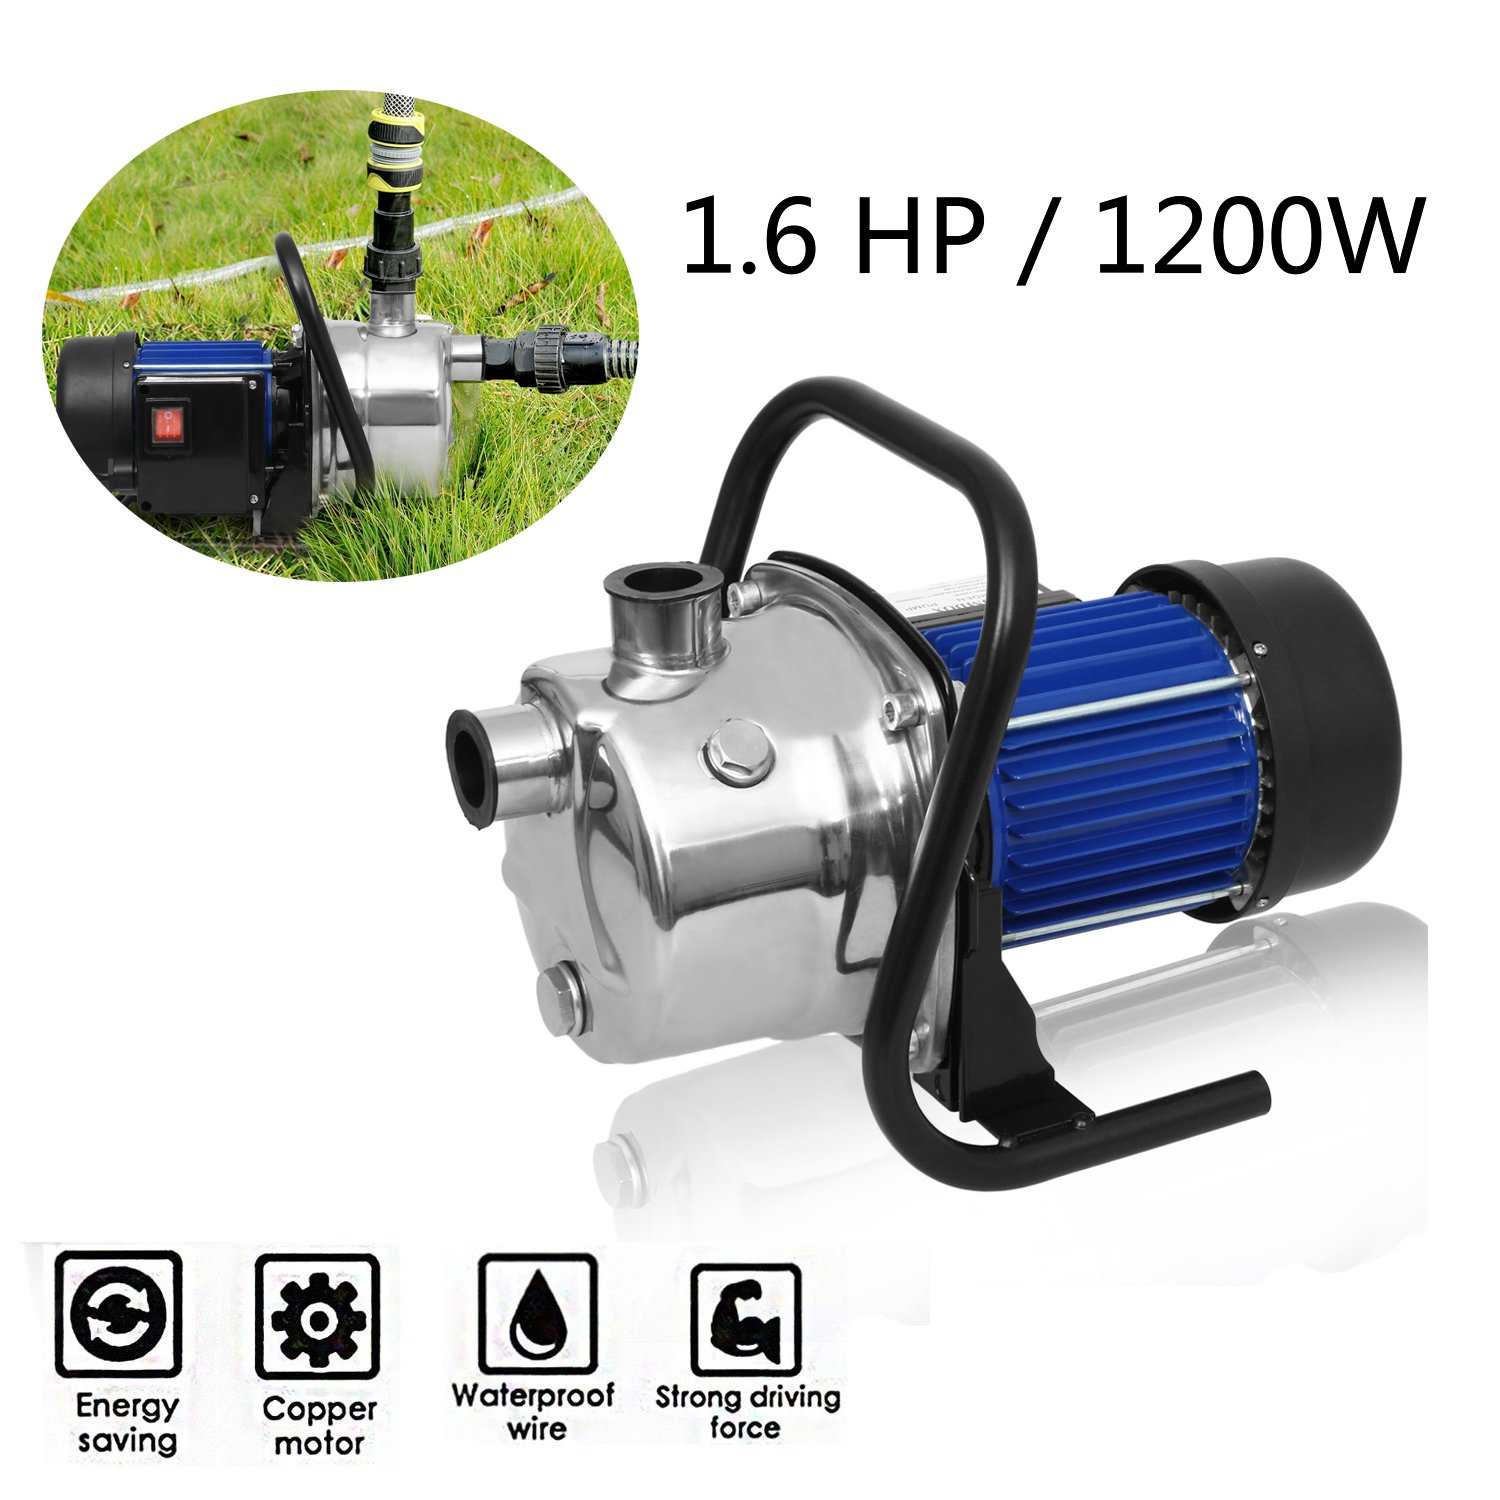 1.6HP 1200W Stainless Steel Water Pump Shallow Well Pump Electric Home Garden Lawn Sprinkling Booster Pump Transfer (US STOCK)